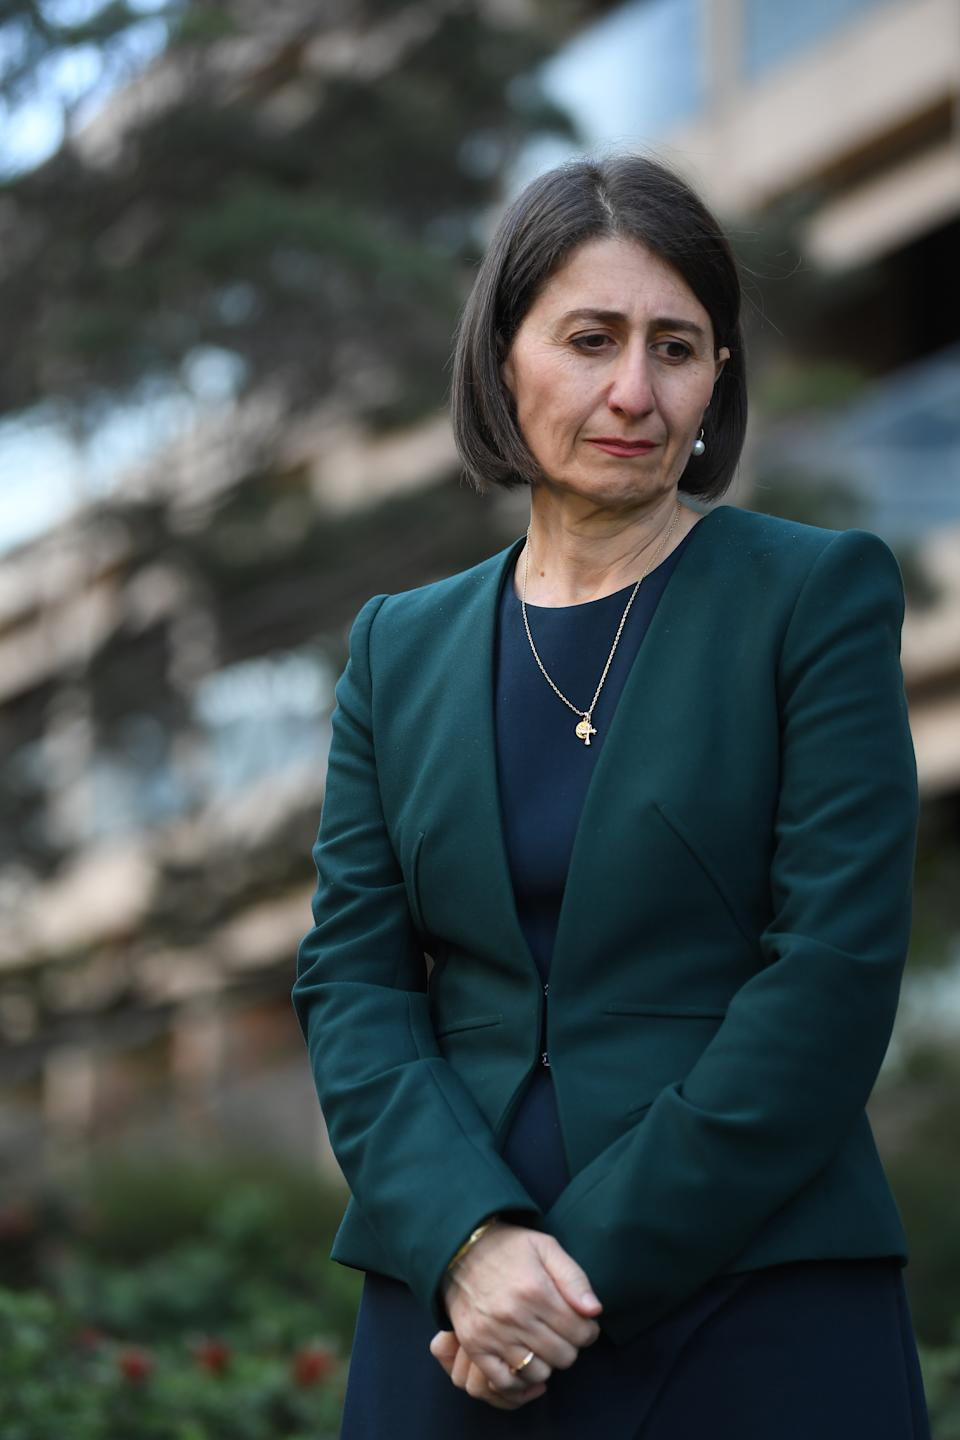 NSW Premier Gladys Berejiklian confessed on Monday that Daryl Maguire was never her boyfriend. Source: AAP